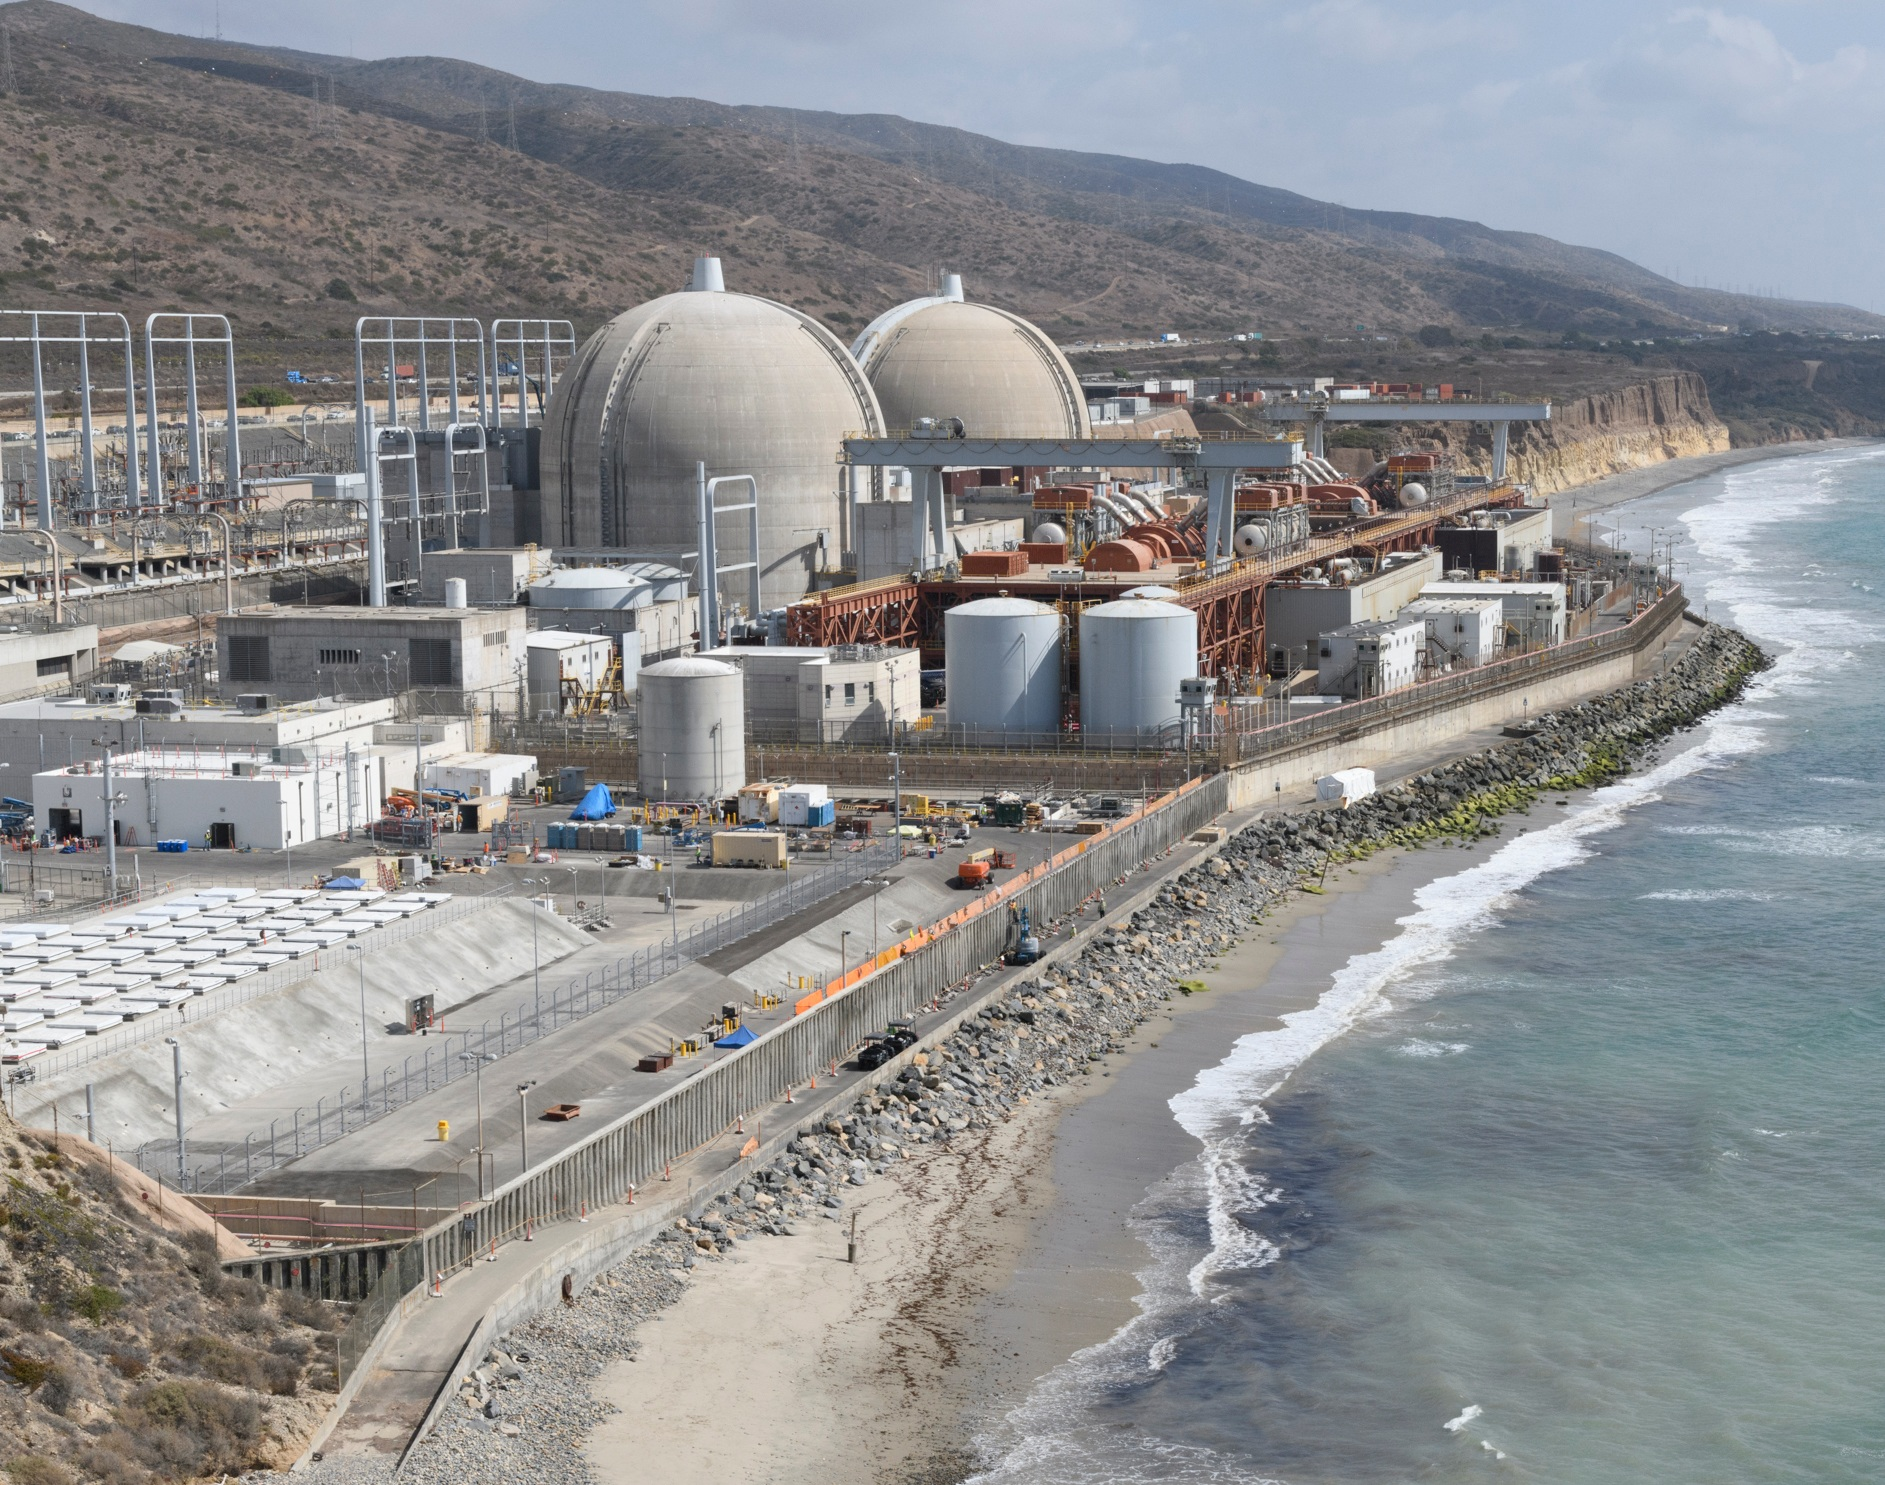 San Onofre is on the coast between San Diego and Los Angeles